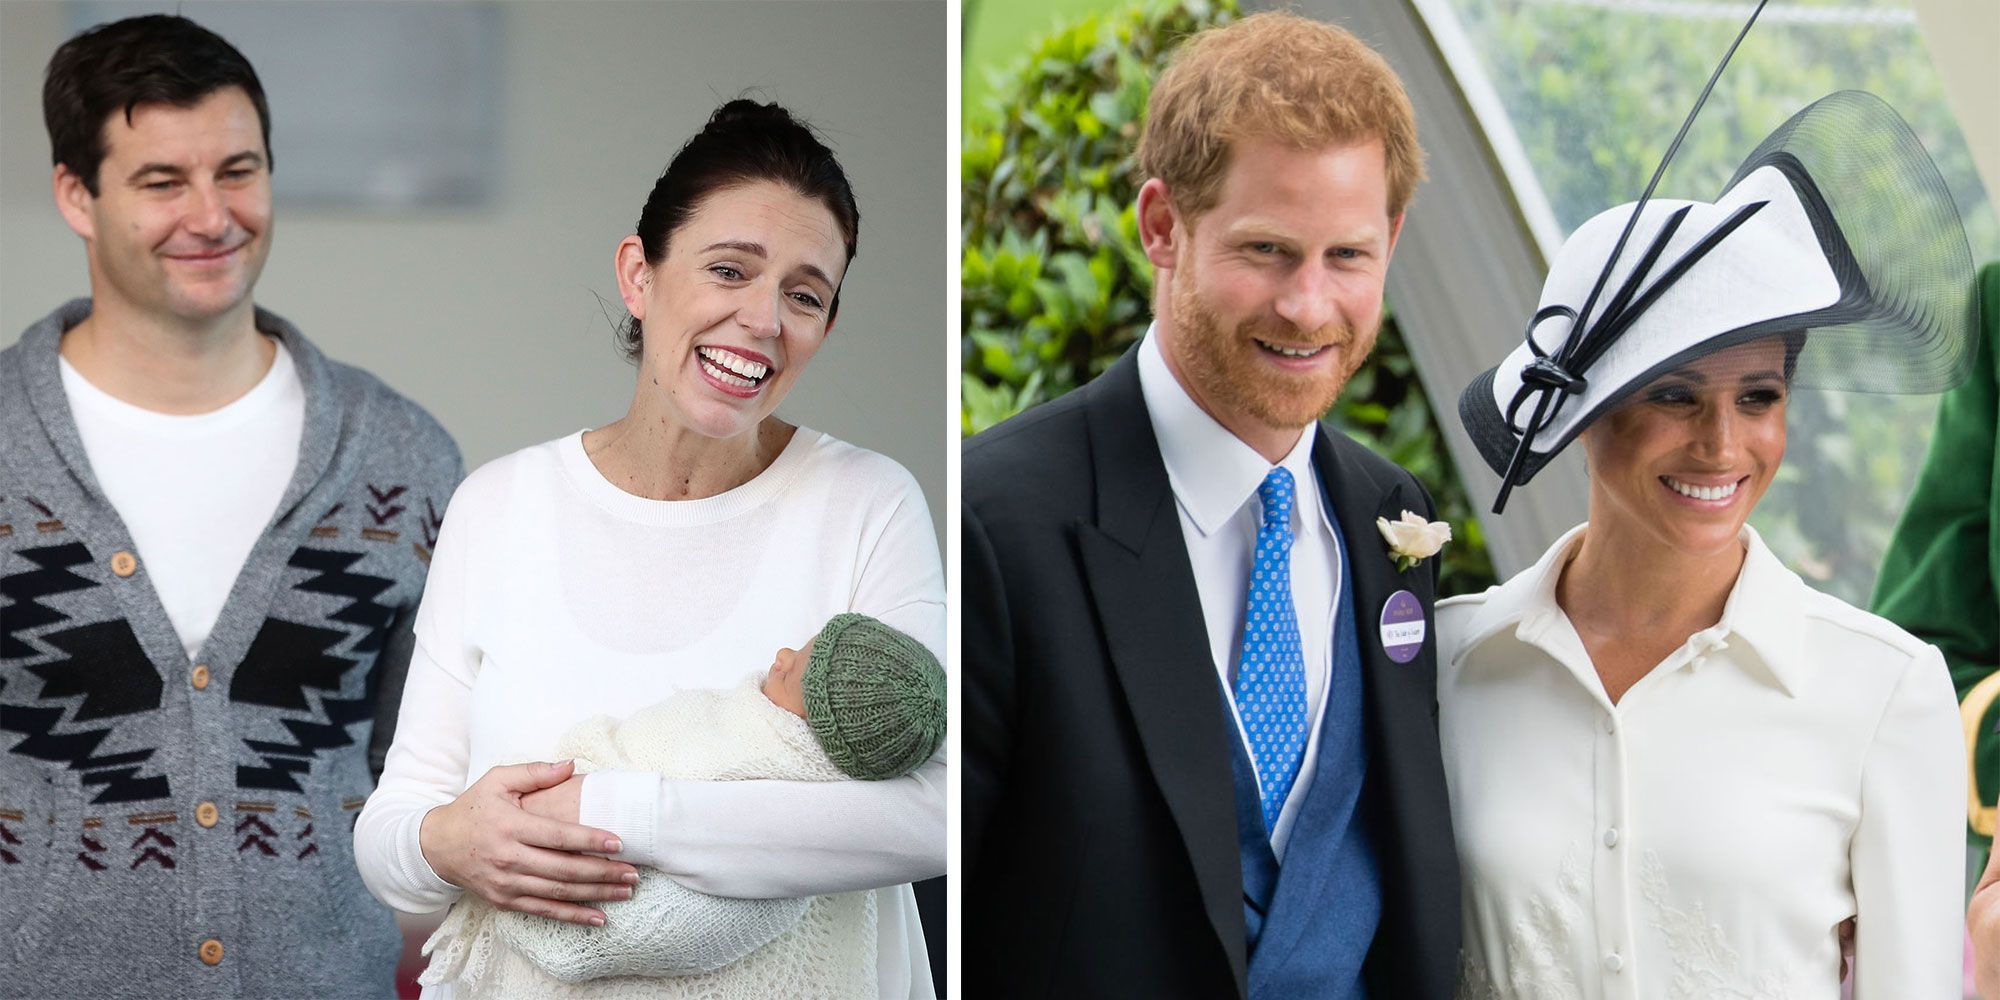 New Zealand's Prime Minister Let It Slip She'd Received A Lovely Card From Prince Harry And Meghan Markle